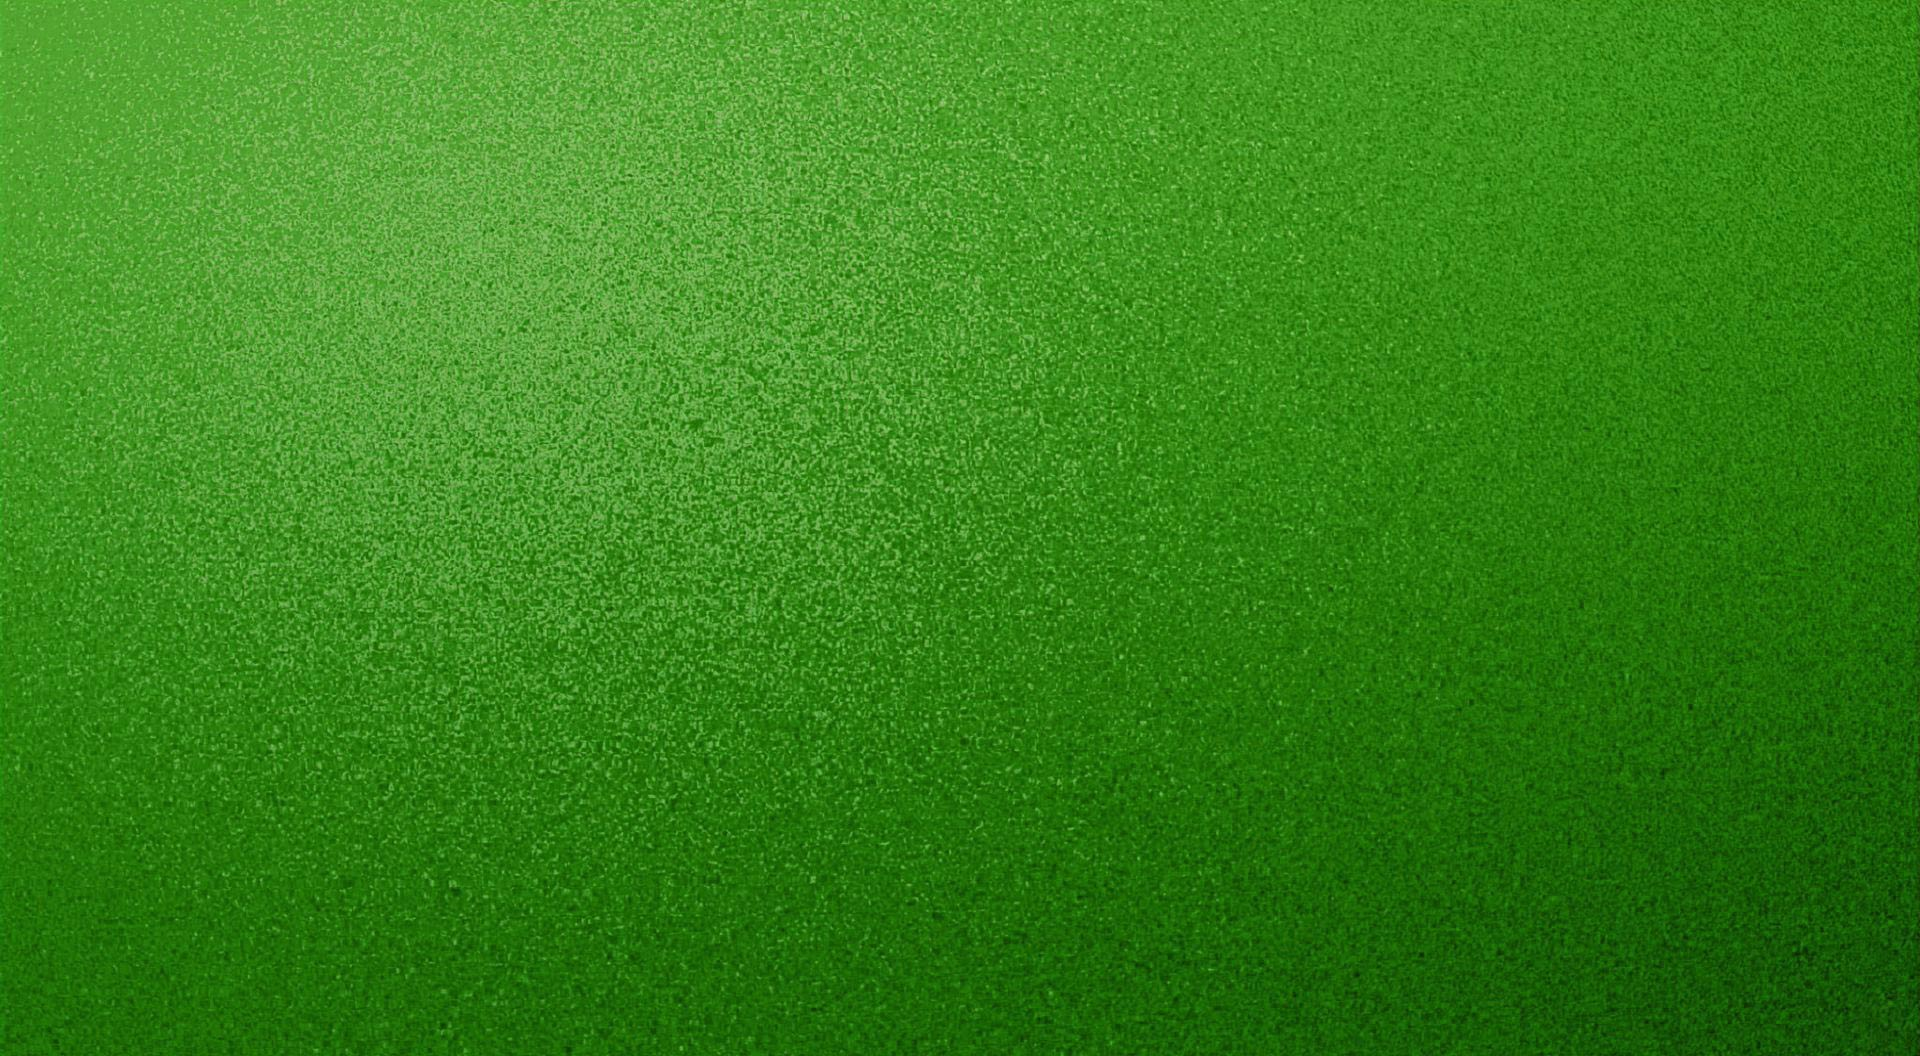 photo of a green - photo #7